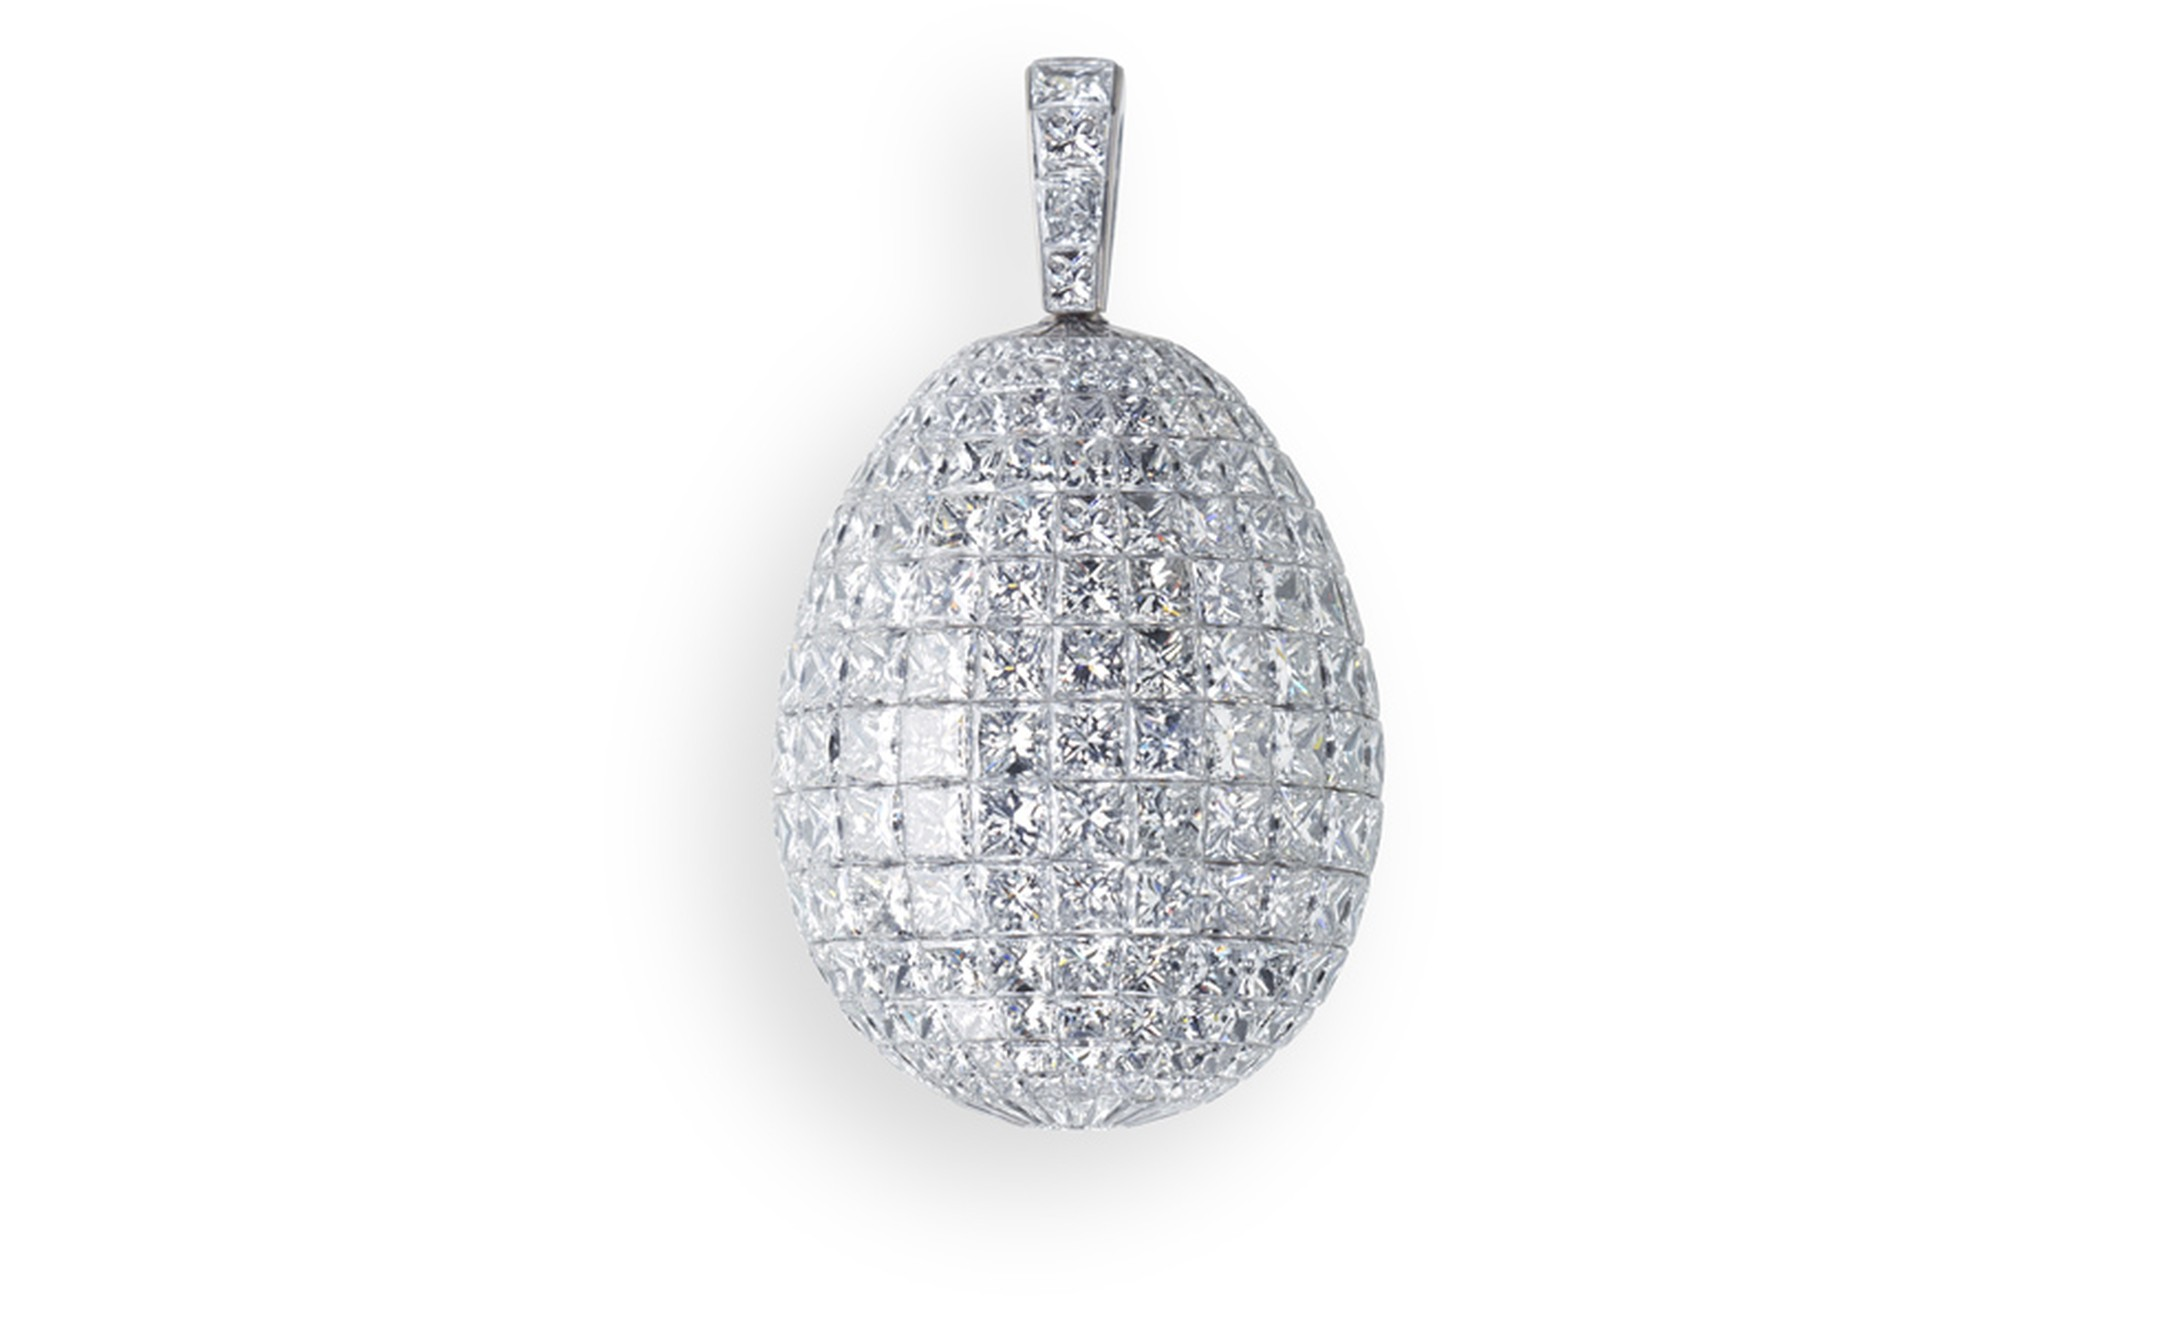 Fabergé. L'Oeuf Diamant (The Diamond Egg). This piece is set in Titanium and feature 394 white diamonds totalling 66.40cts. POA